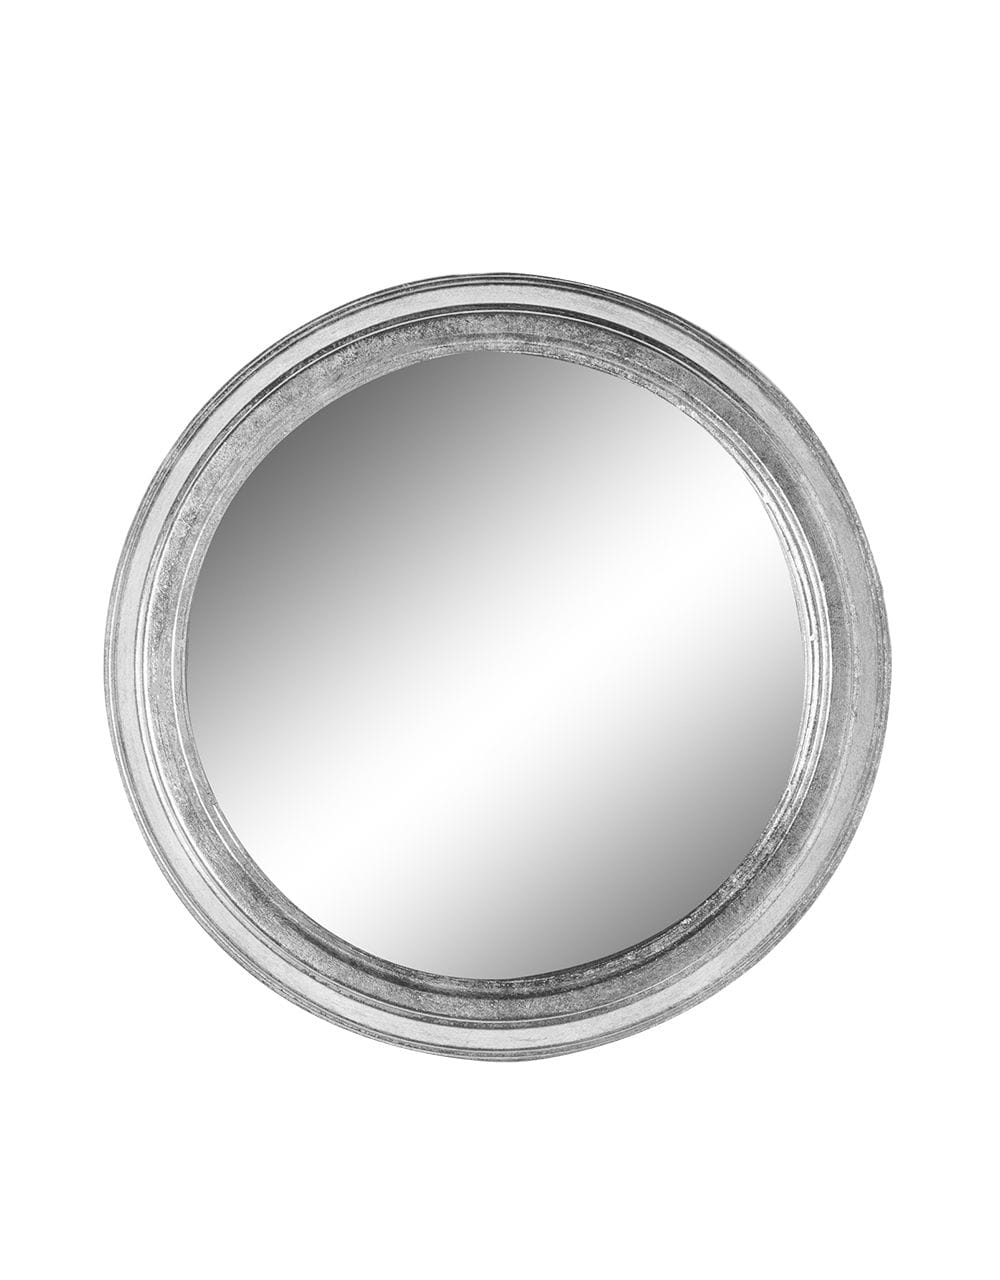 Large Silver Round Wall Mirror - €99.00 | H51xW51xD11cm